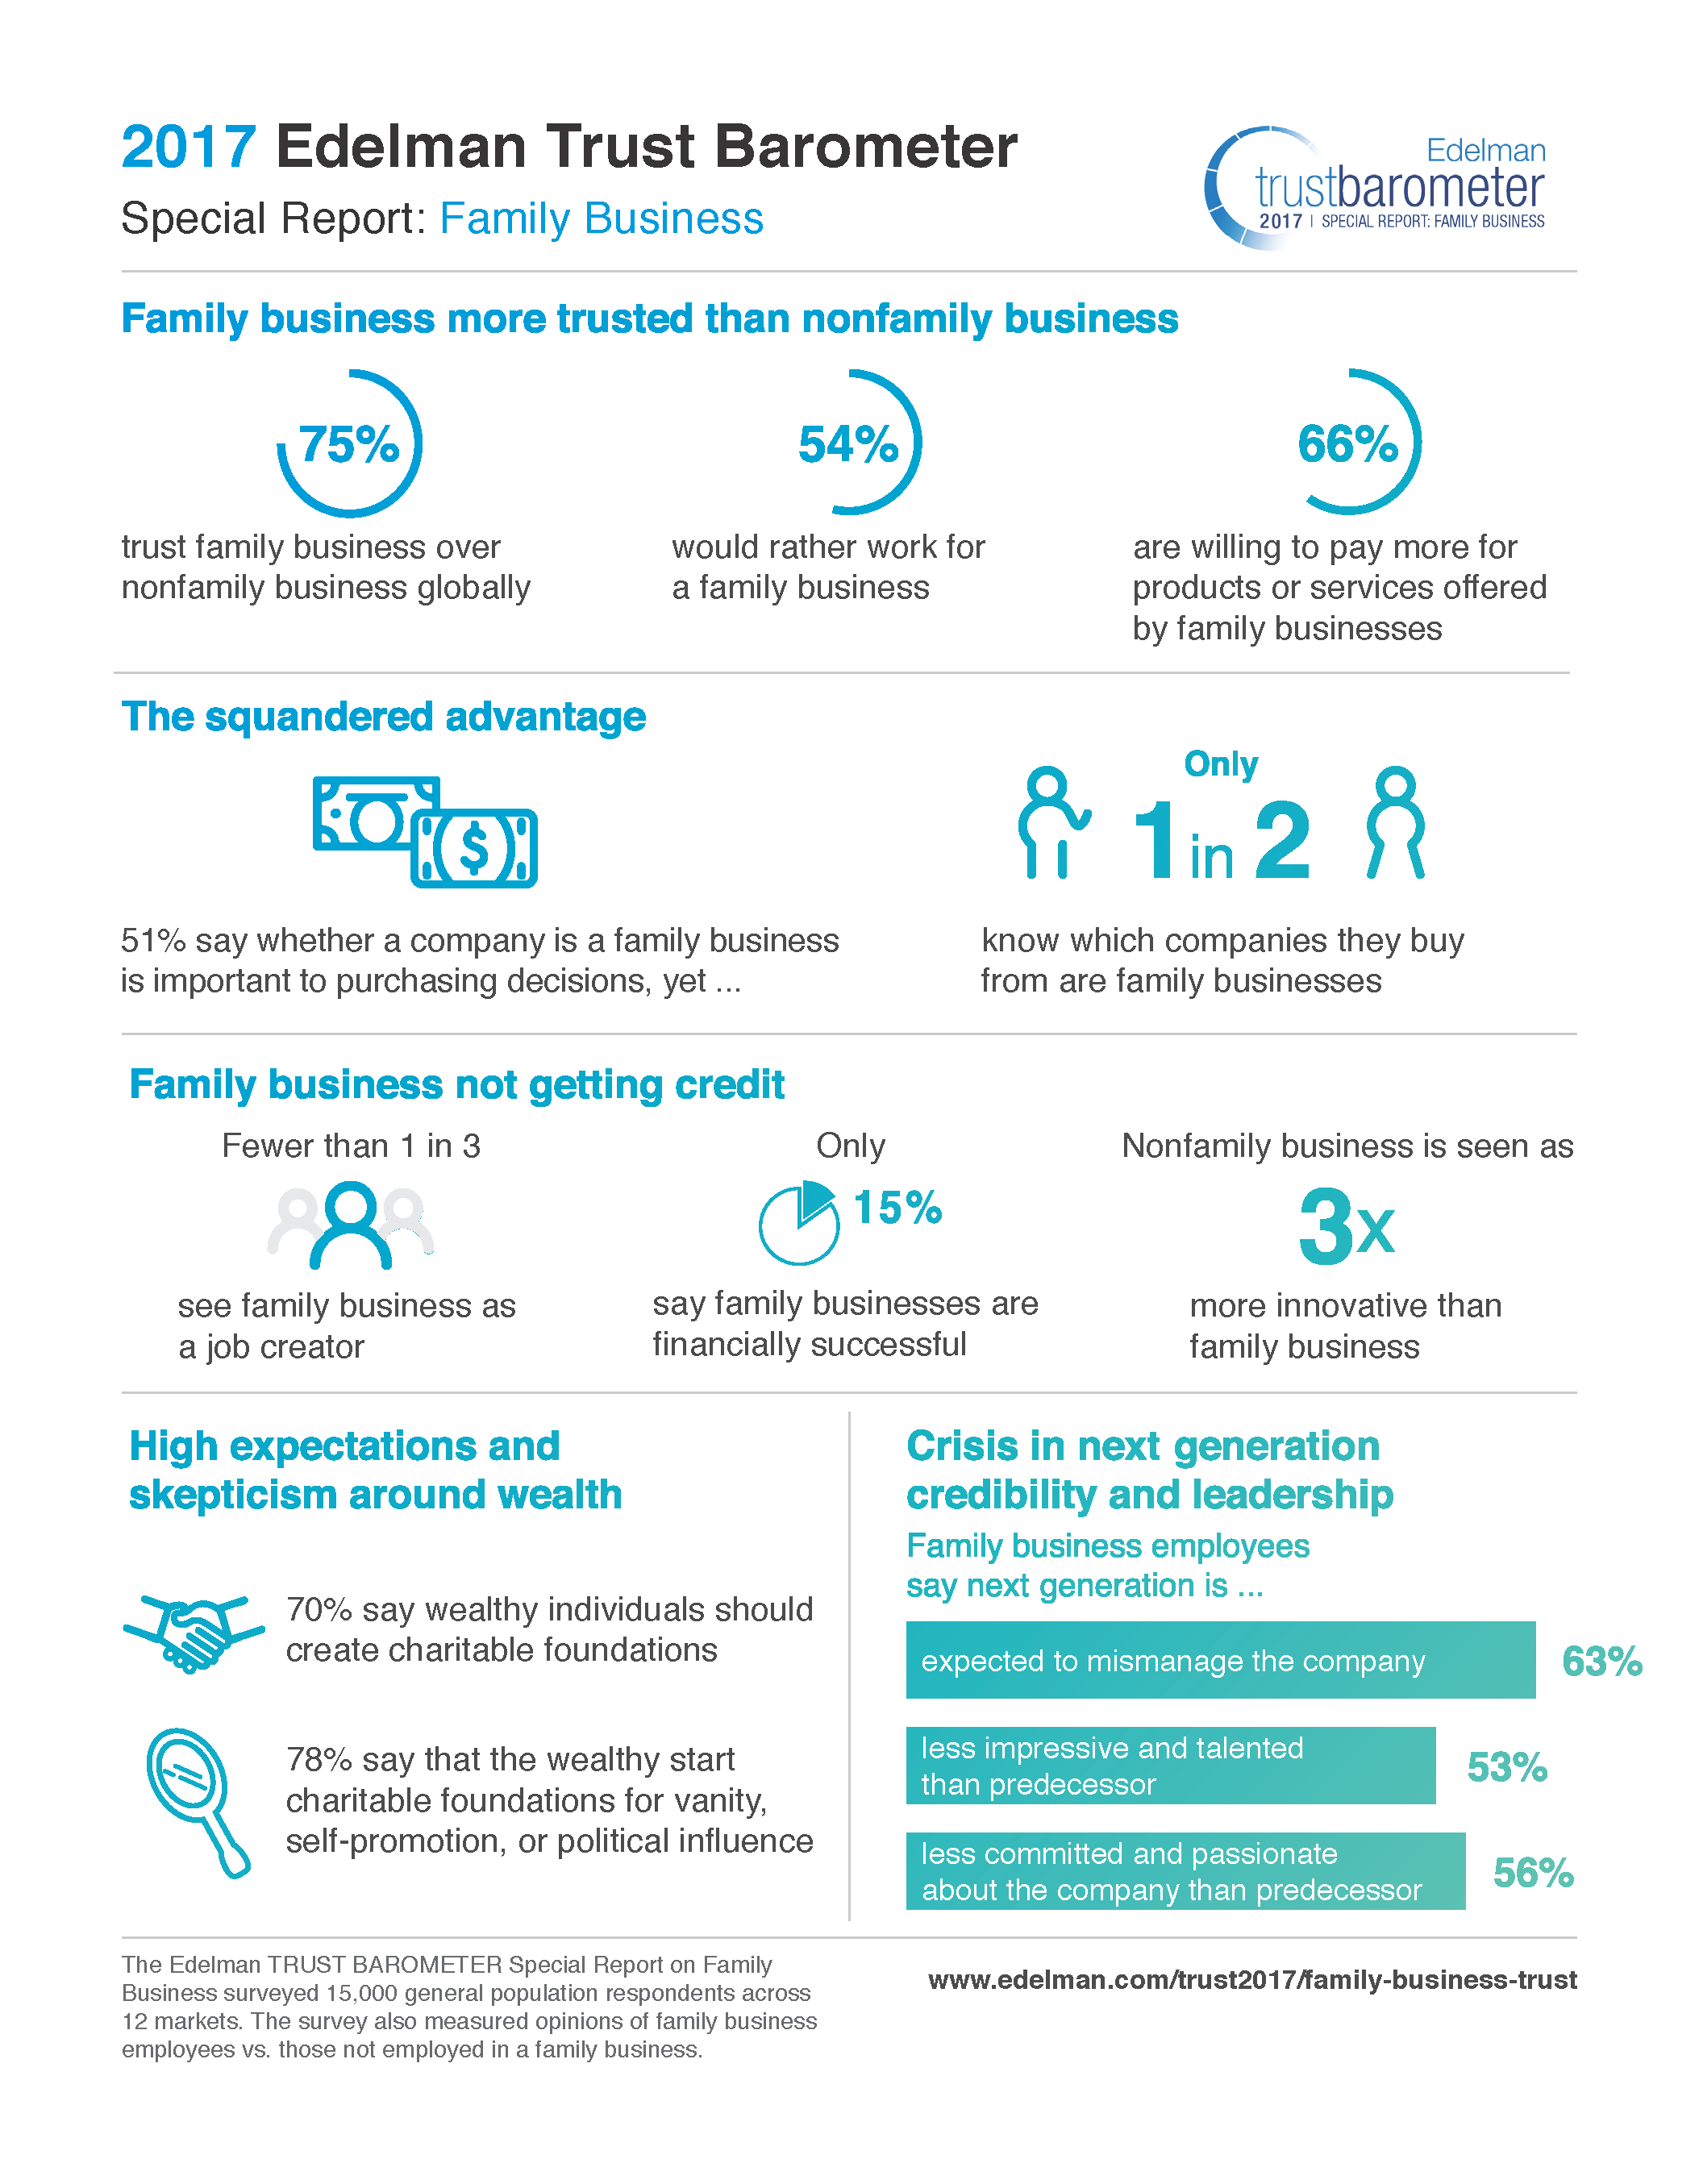 Edelman Trust Barometer Special Report: Family Business